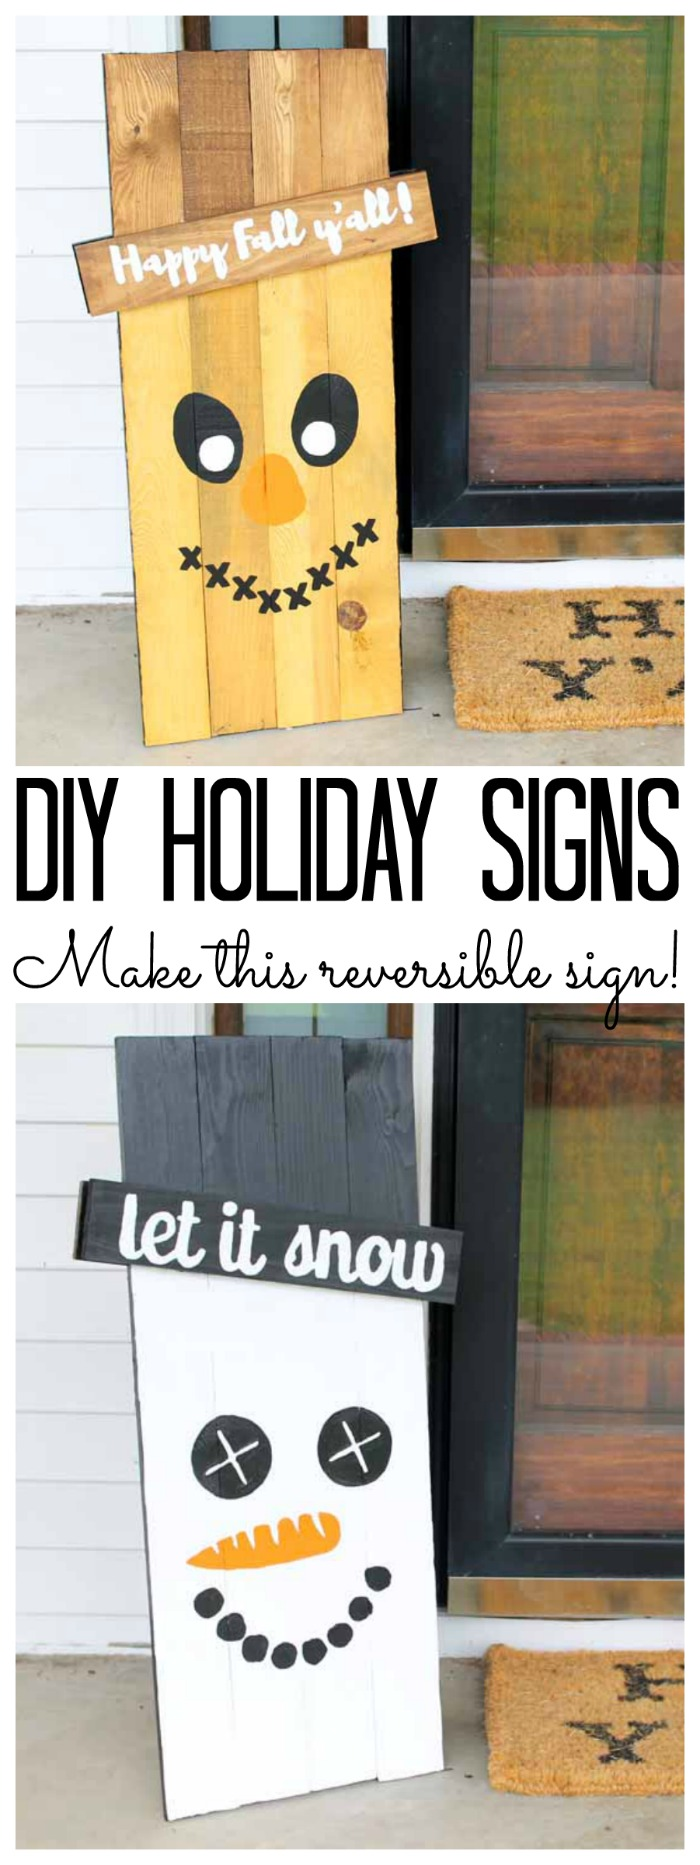 Holiday Signs Reversible Scarecrow And Snowman The Country Chic